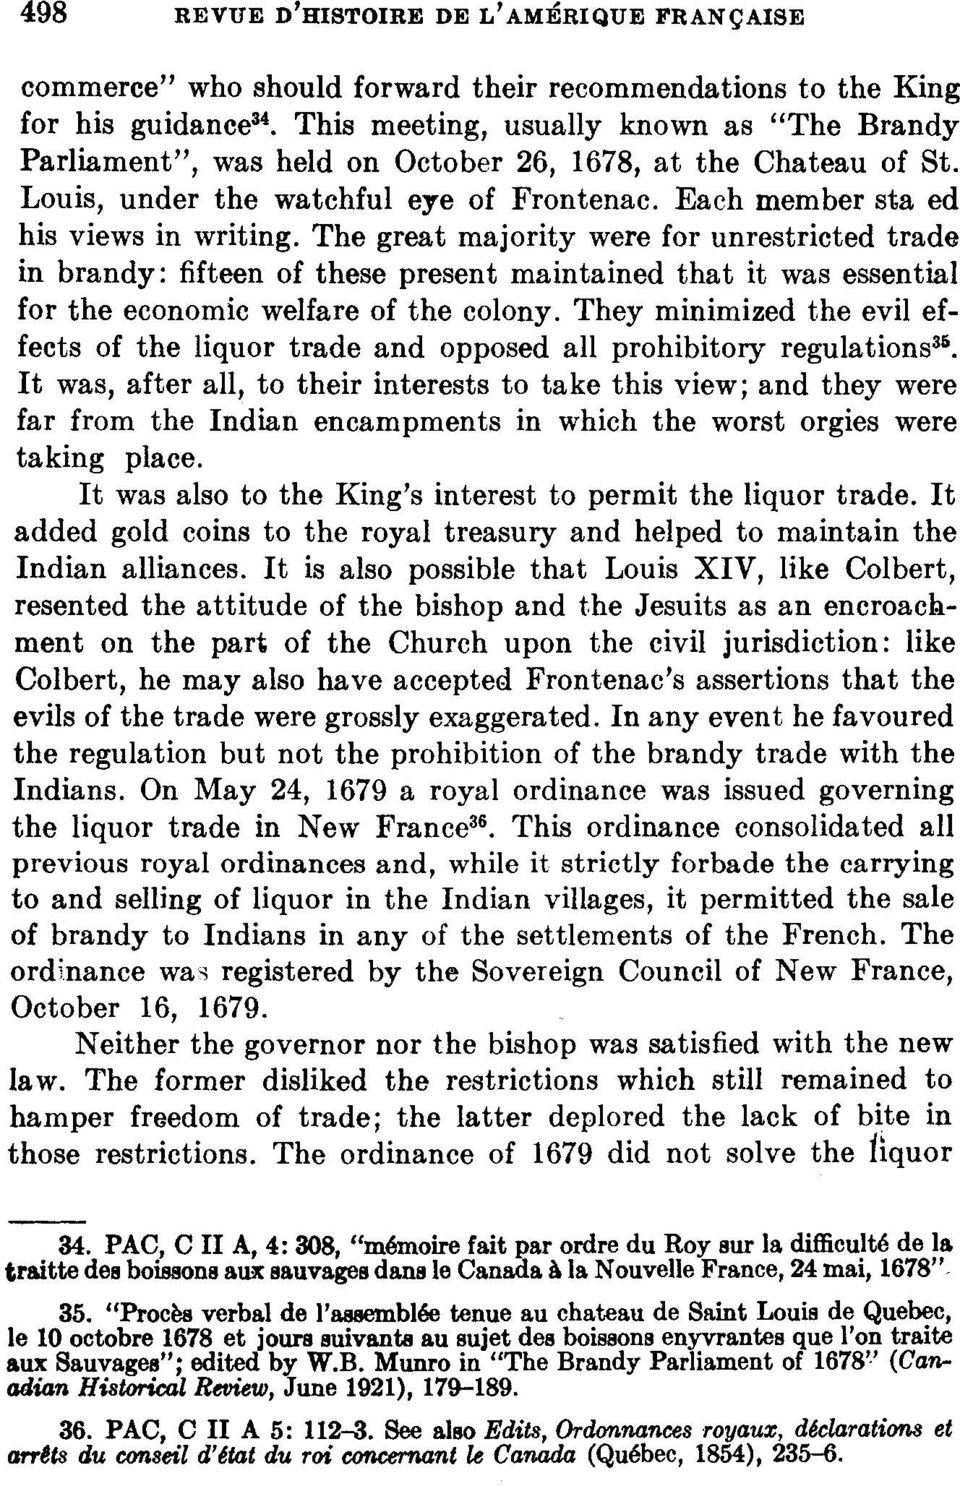 The great majority were for unrestricted trade in brandy: fifteen of these present maintained that it was essential for the economic welfare of the colony.